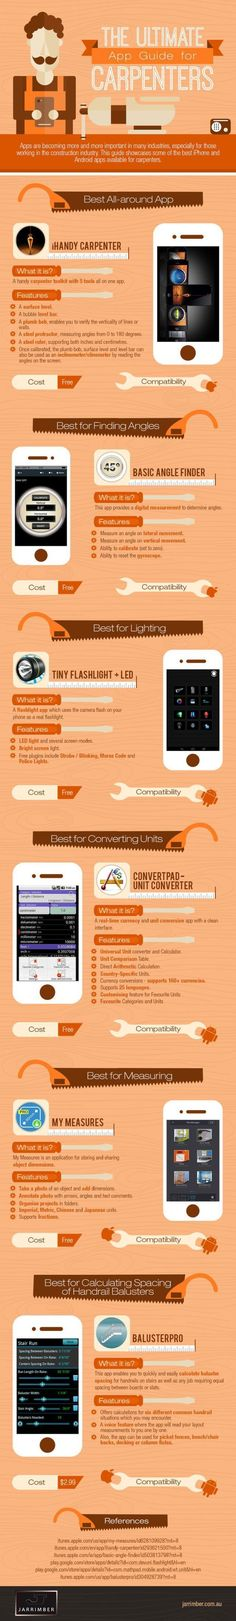 Educational : The Best Smartphone Apps For DIY Carpentry [Infographic] | Lifehacker Australia #woodworkinginfographic